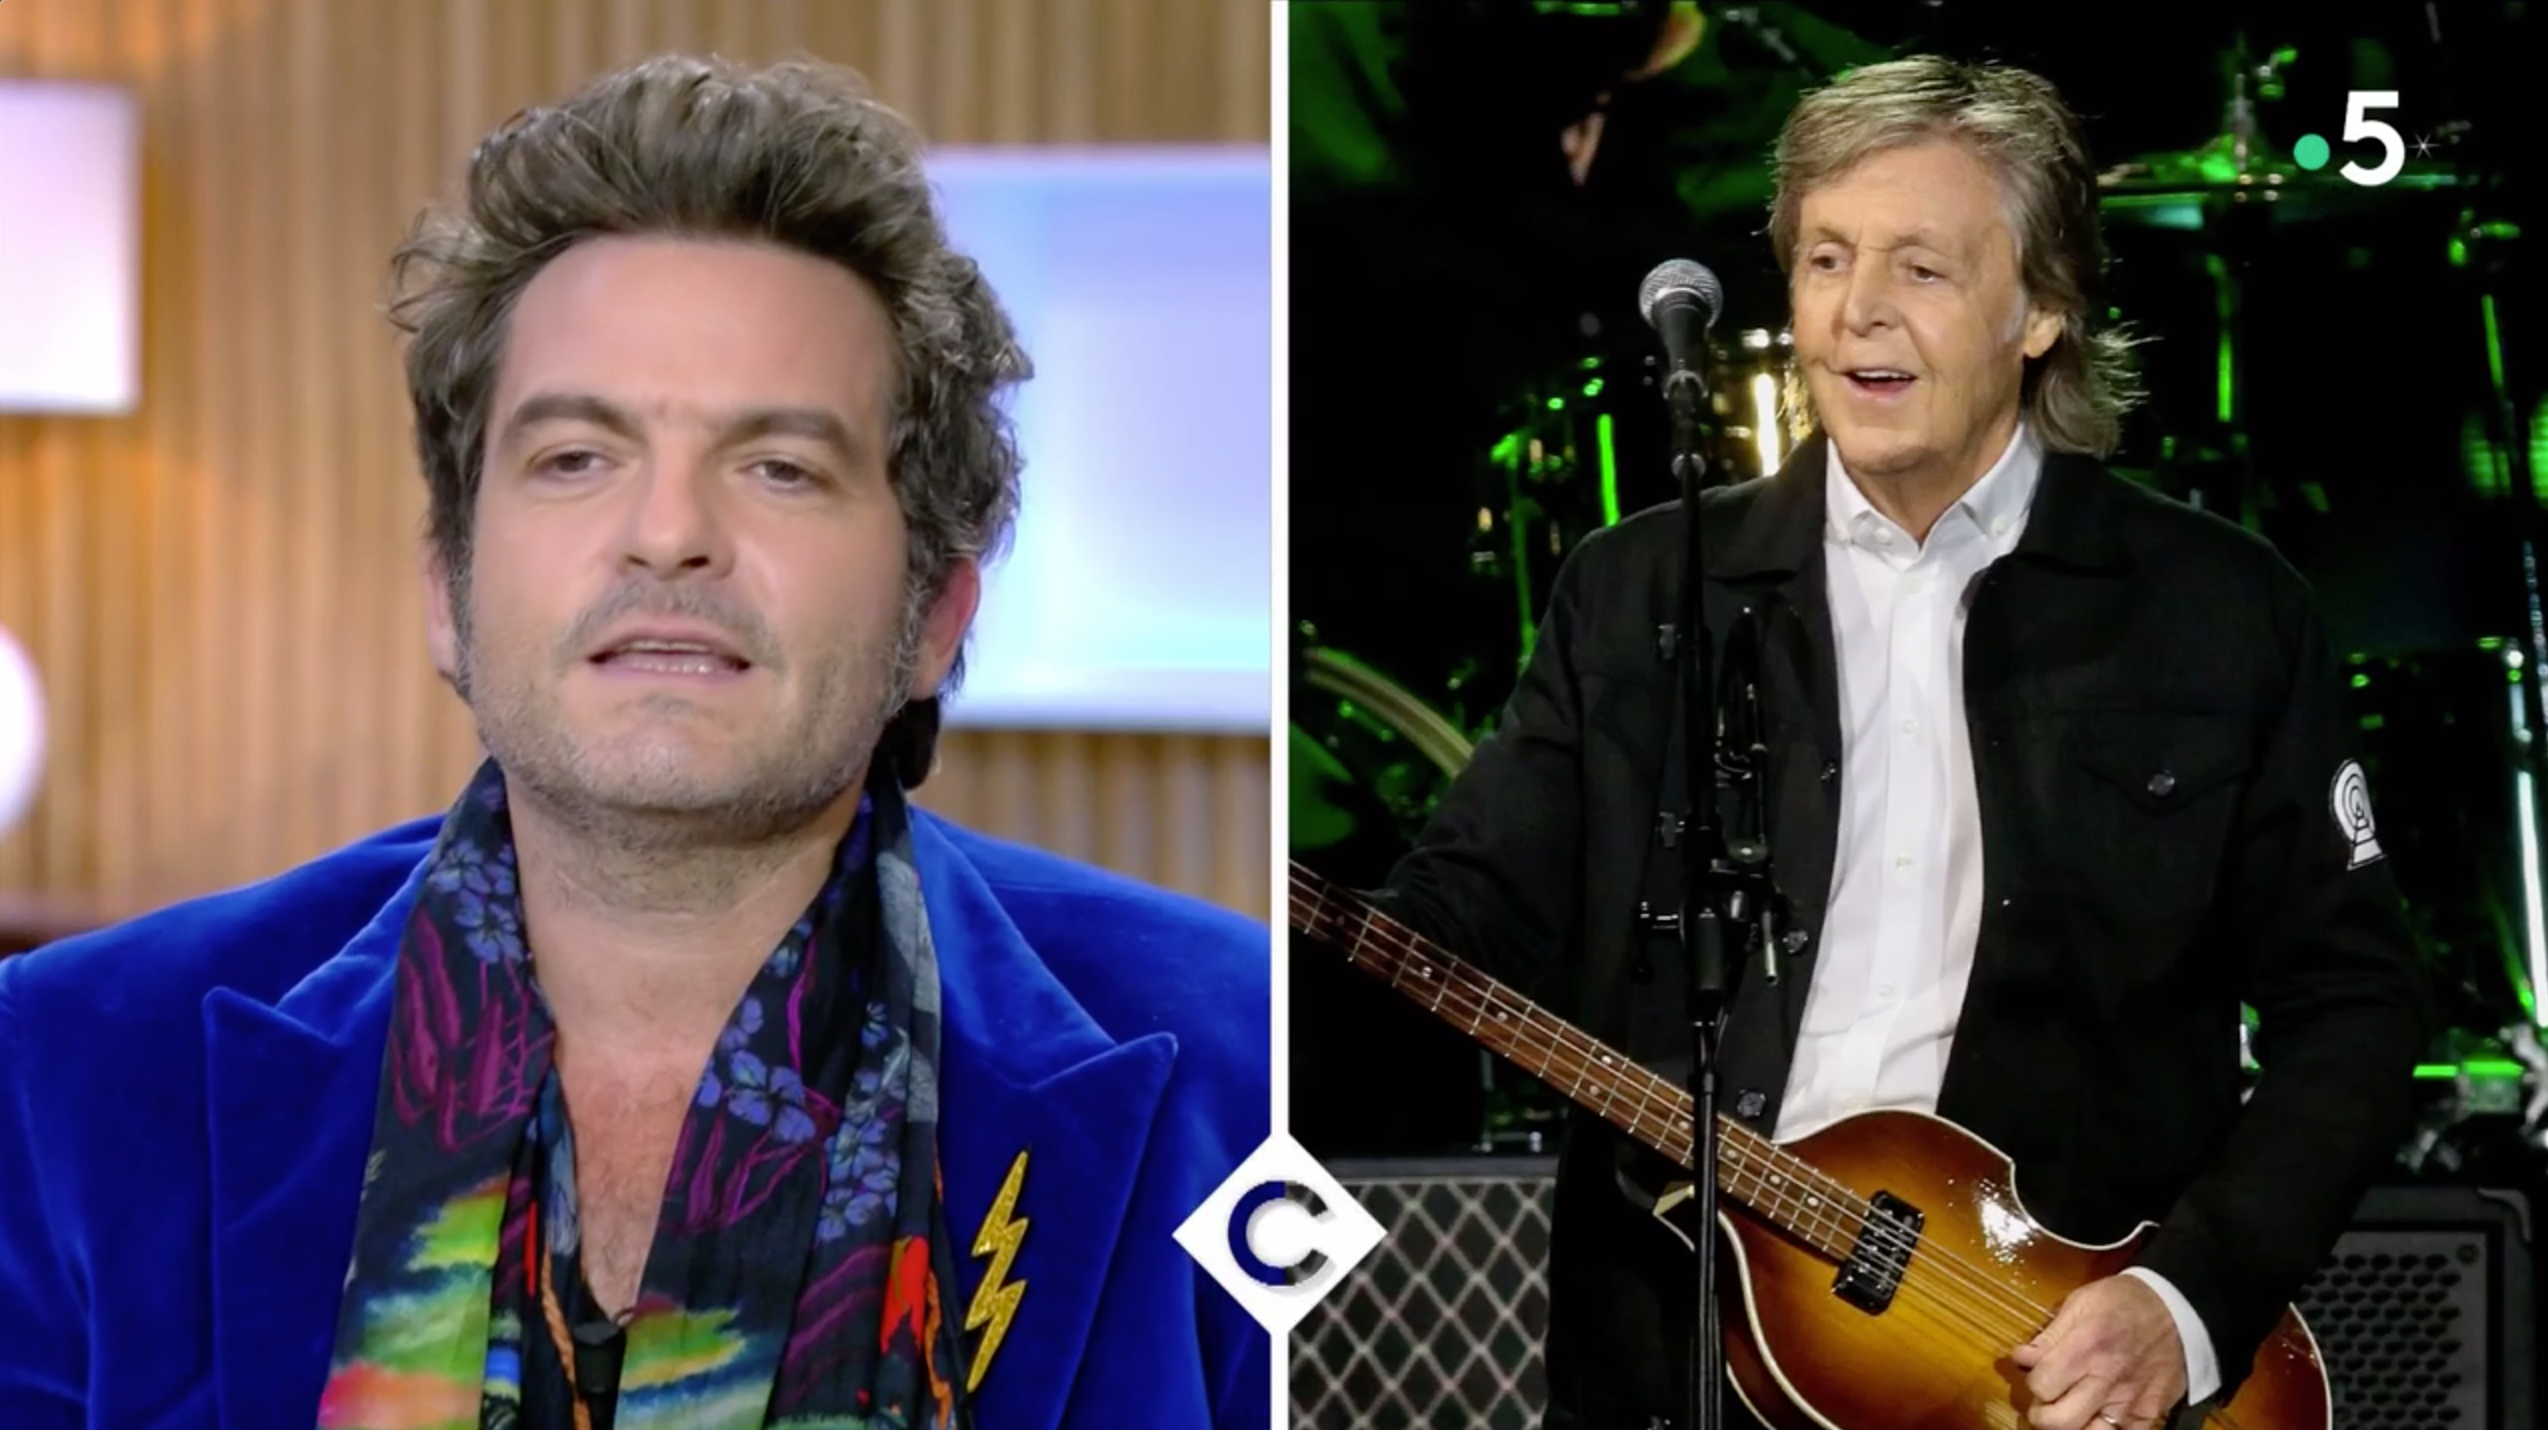 VIDEO C à vous : Matthieu Chedid raconte son incroyable rencontre avec Paul McCartney